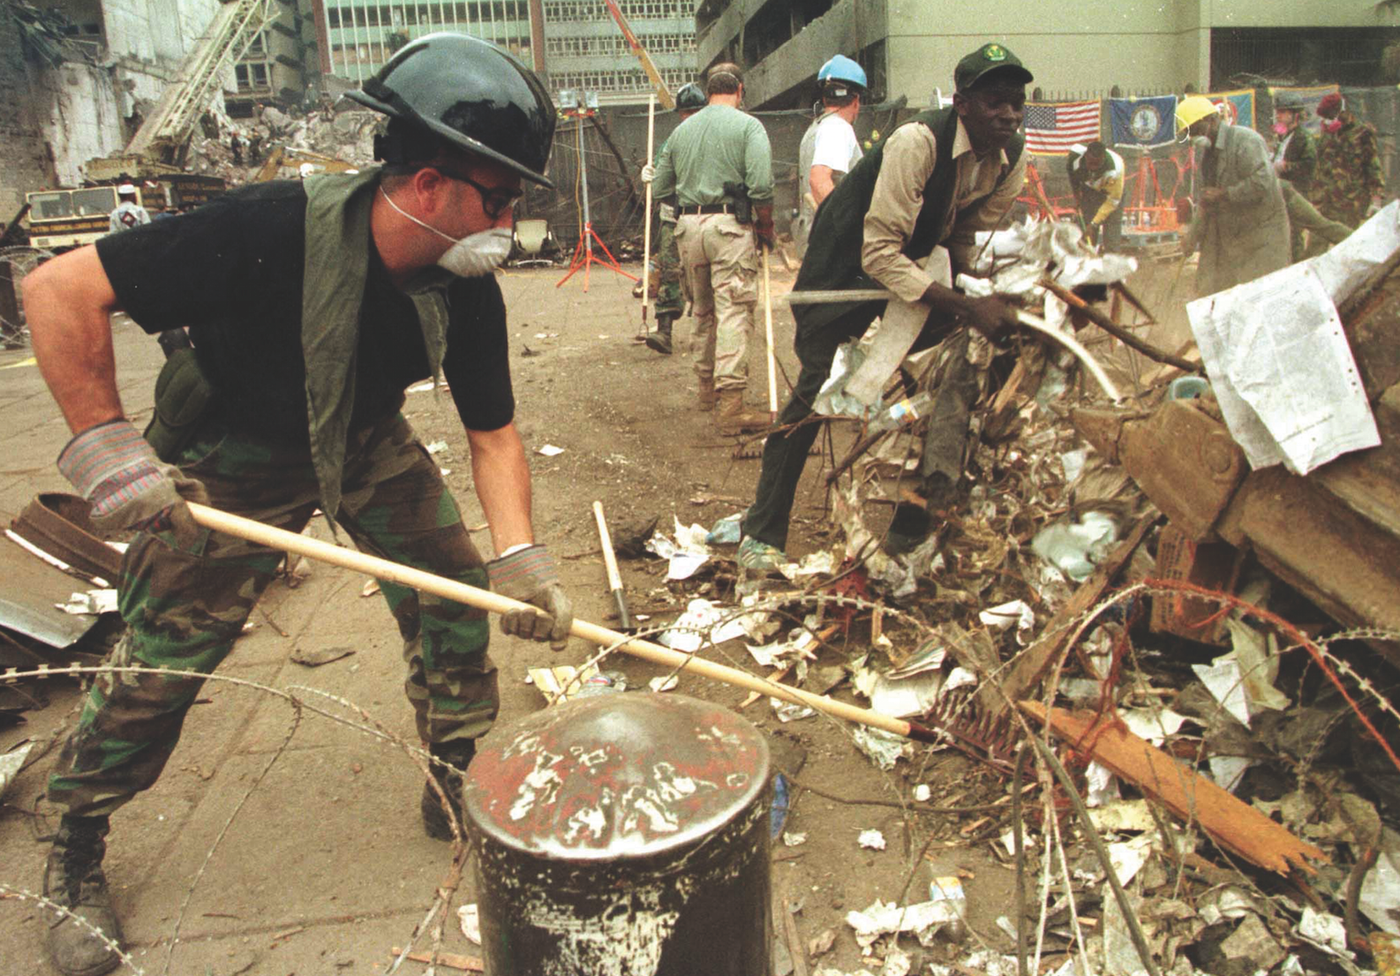 An FBI agent rakes through debris looking for clues following the car bombing of the U.S. Embassy in Kenya in August 1998. Reuters.